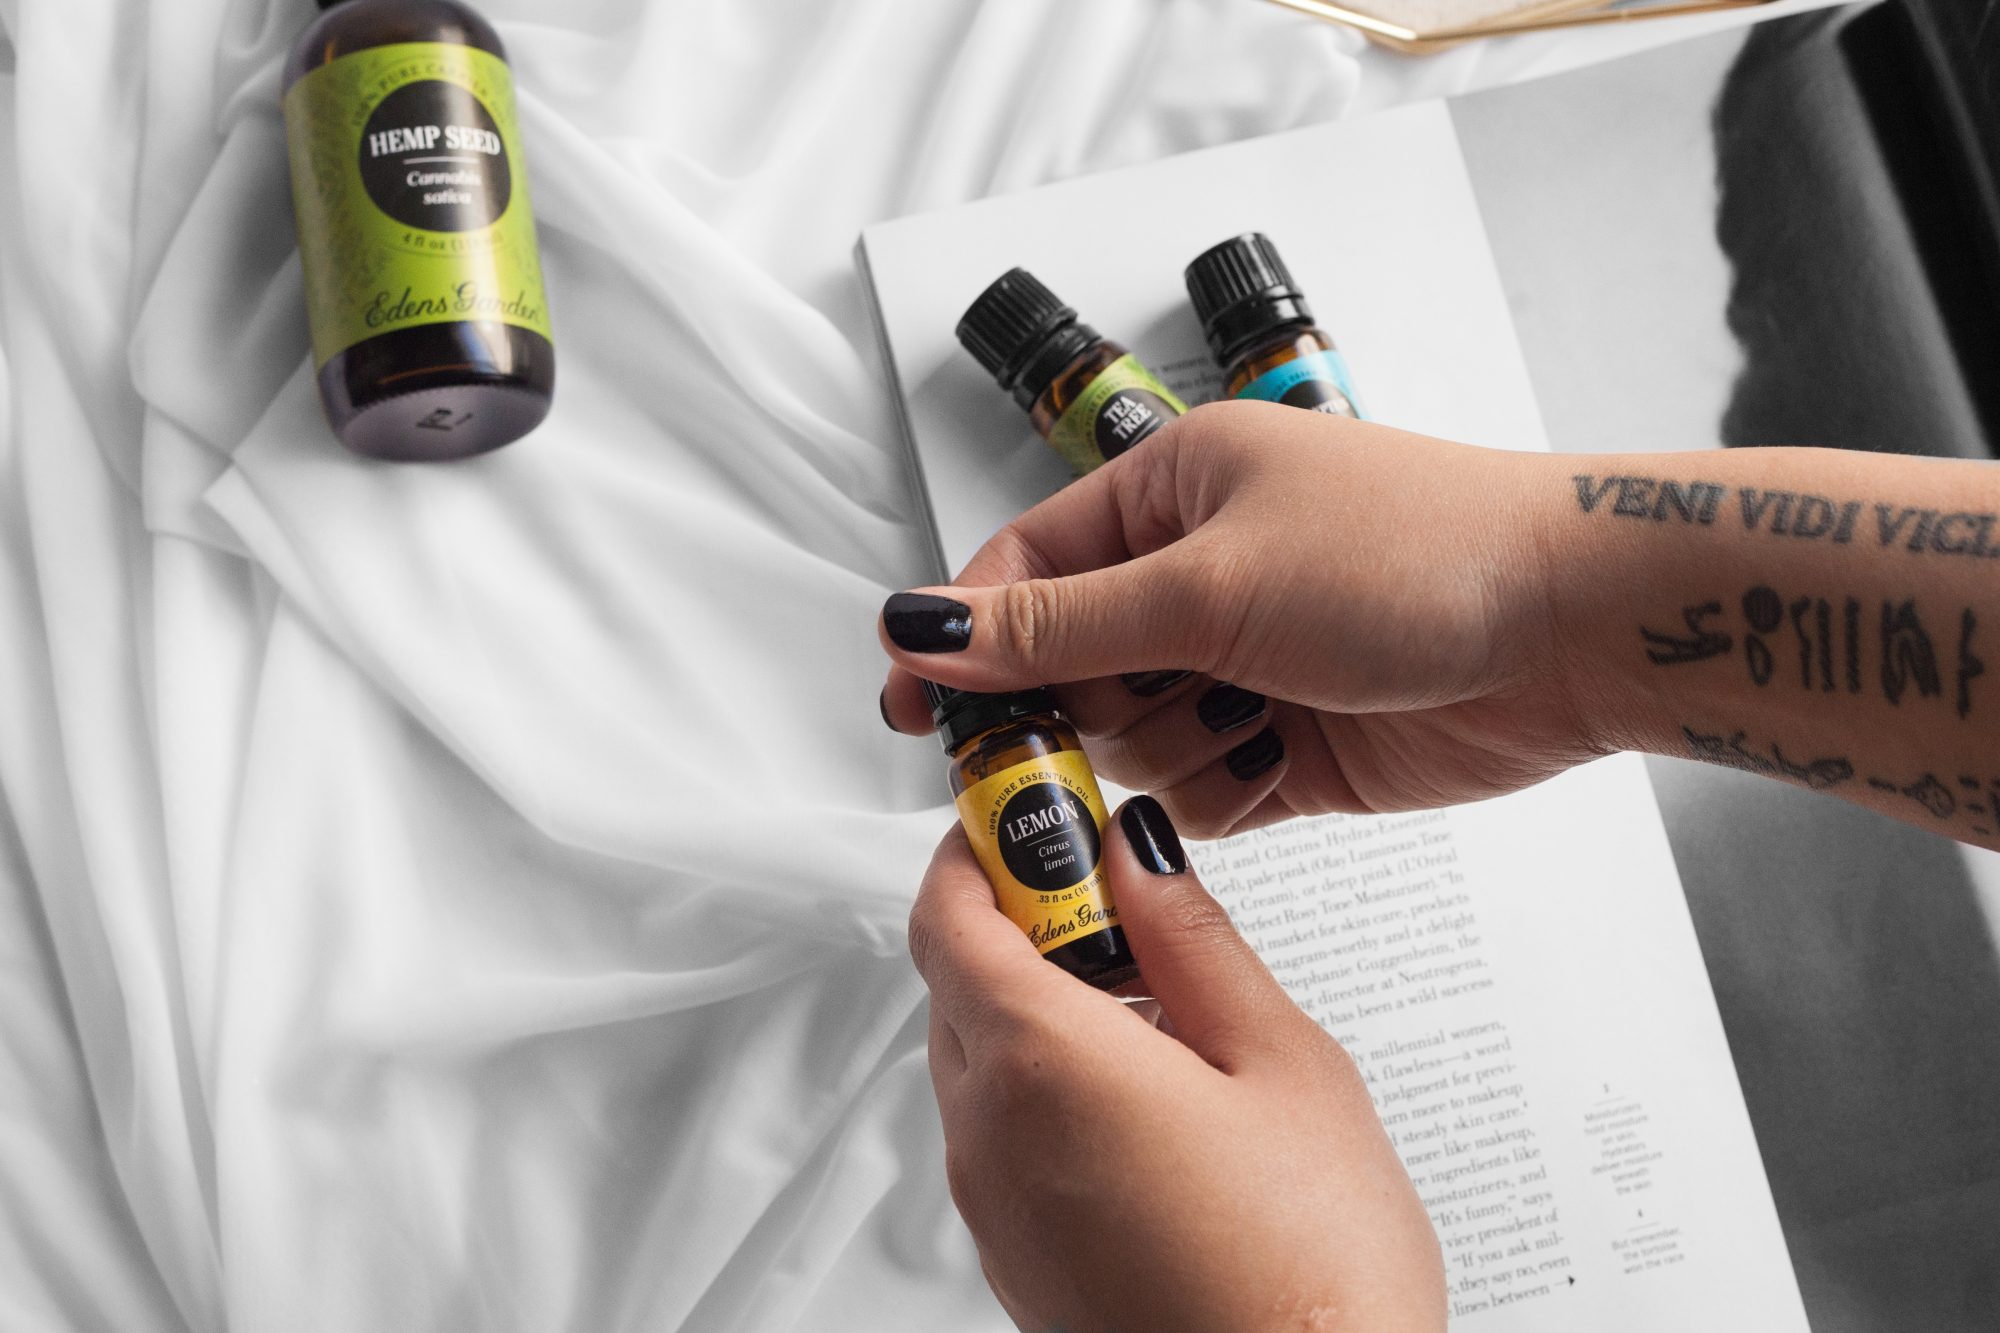 Wondering how I avoided getting sick for over 1 full year? Thanks to the power of Edens Garden essential oils, I am still cold and flu-free! Click to learn more about why this affordable brand is better than the rest. - www.theballeronabudget.com